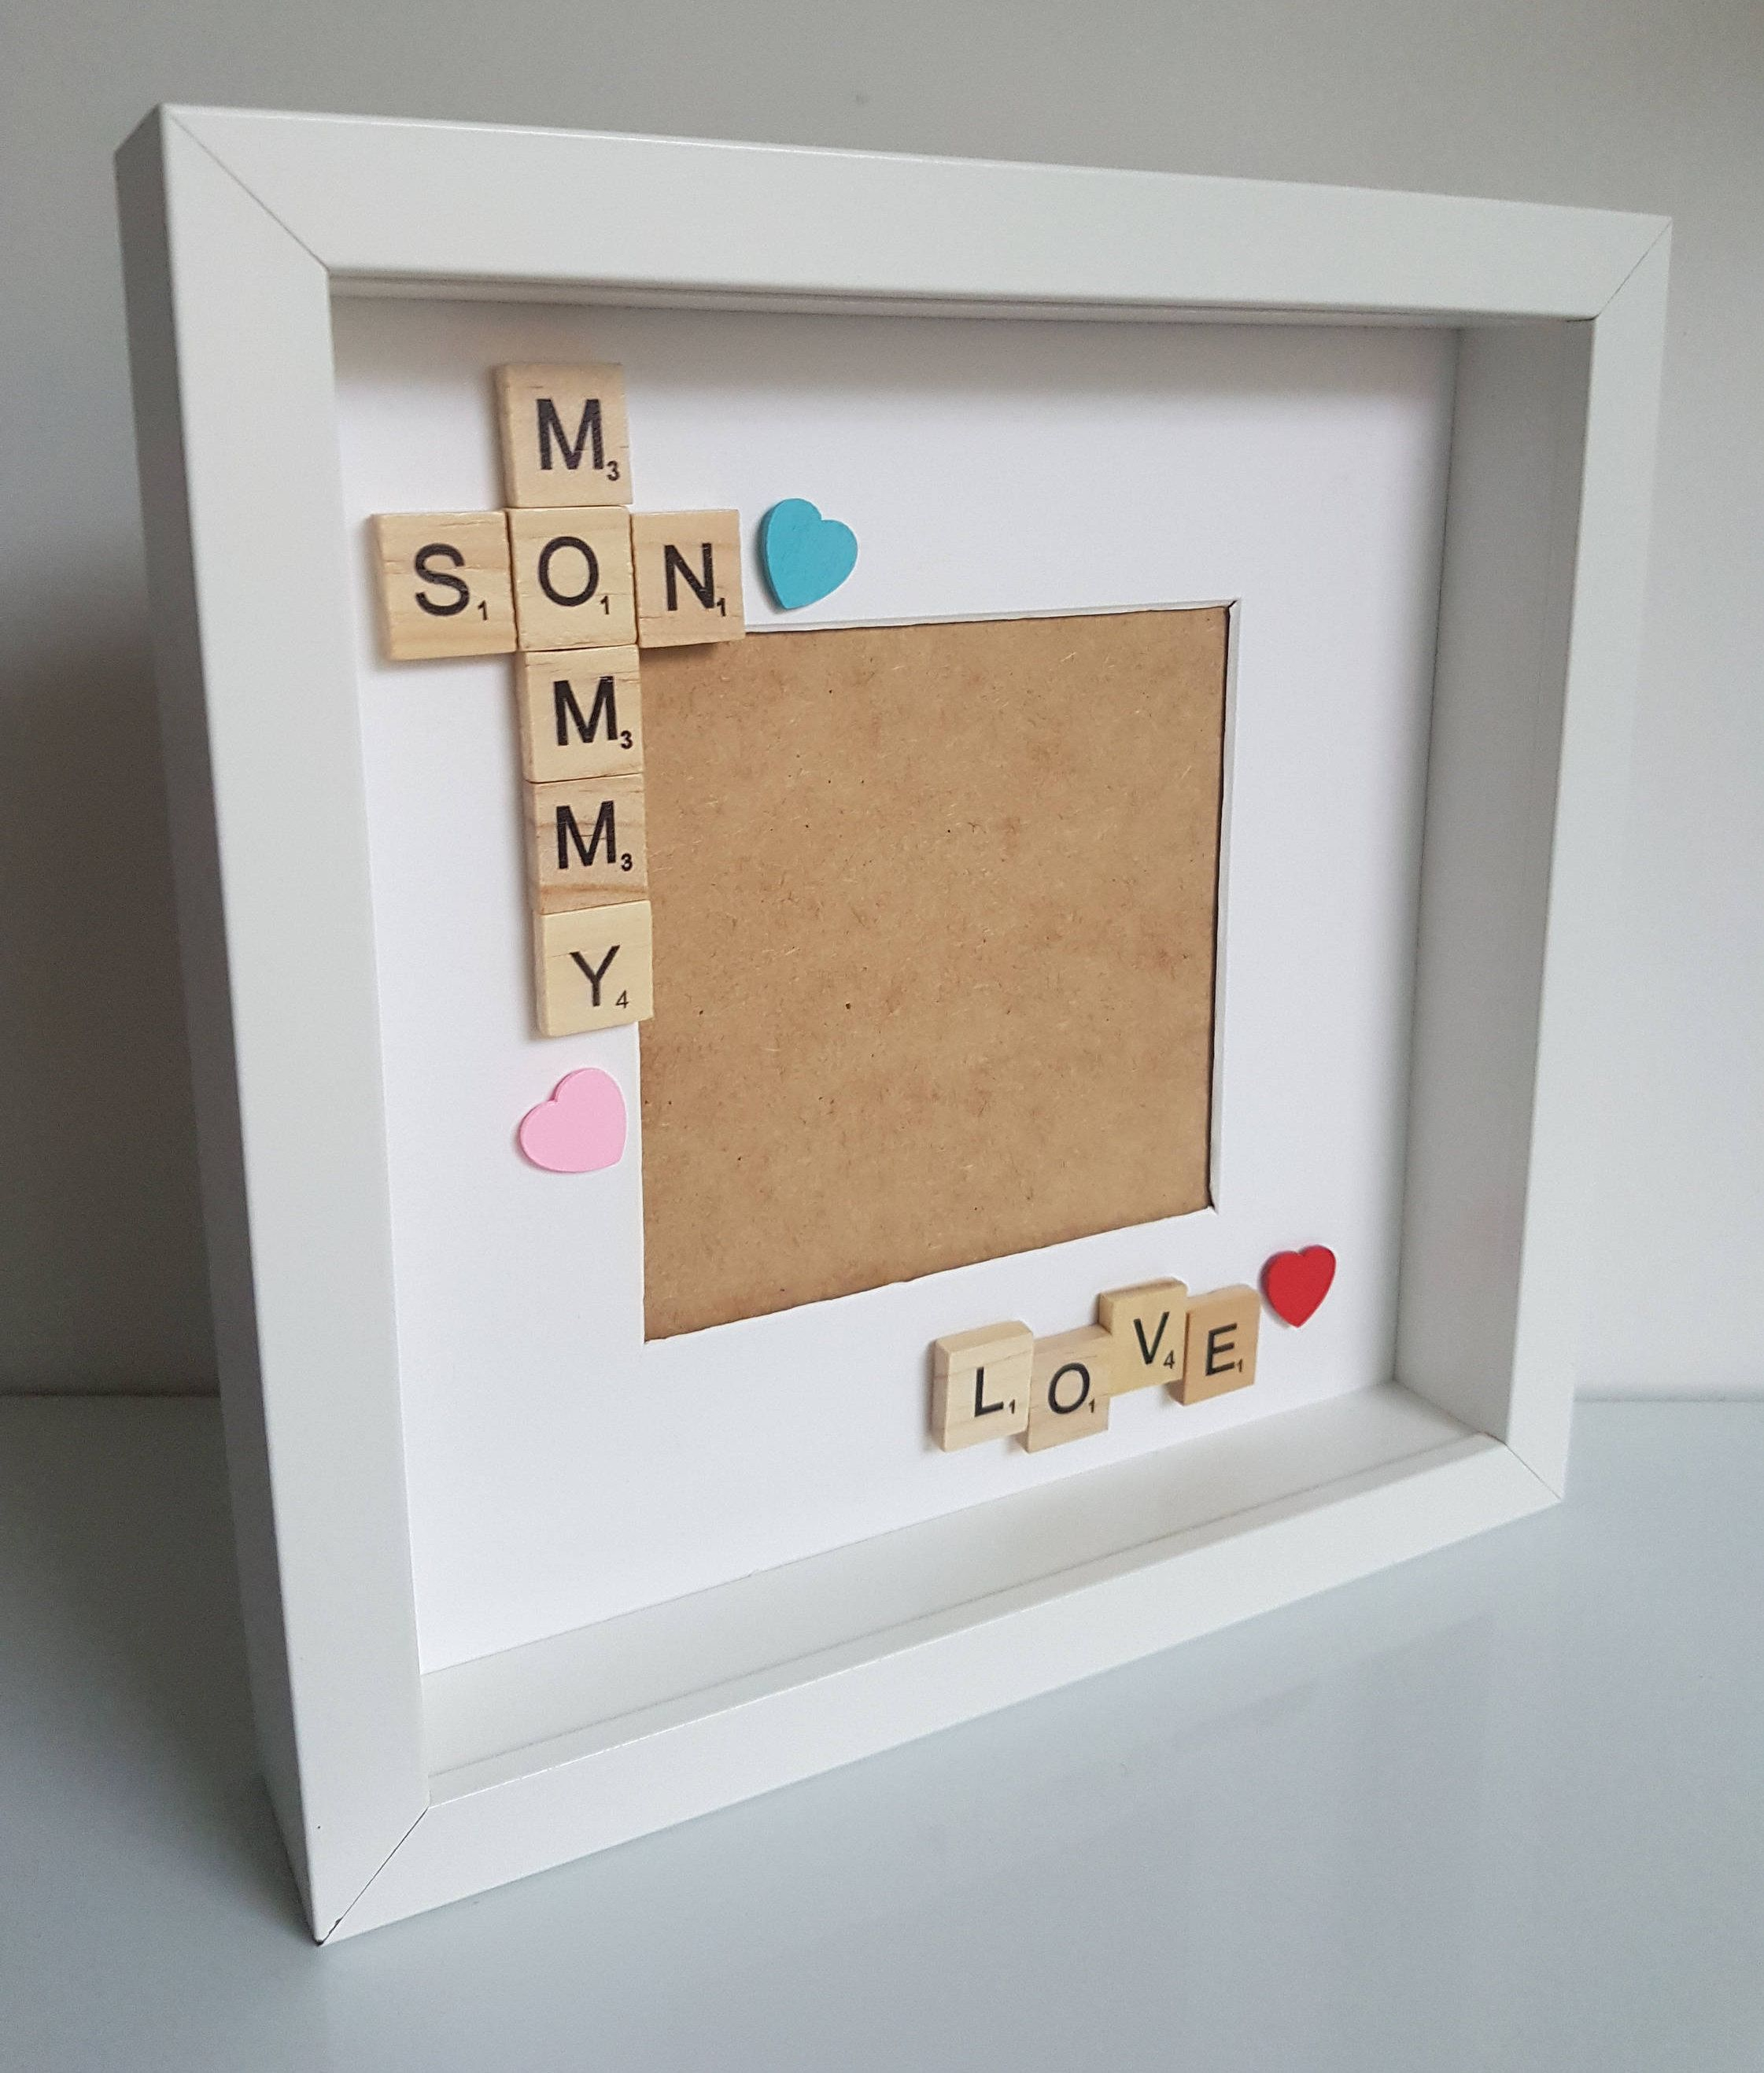 Mommy Son Frame And Keepsake Mothersday Gift For Mum Mums Birthday From Photo Box By